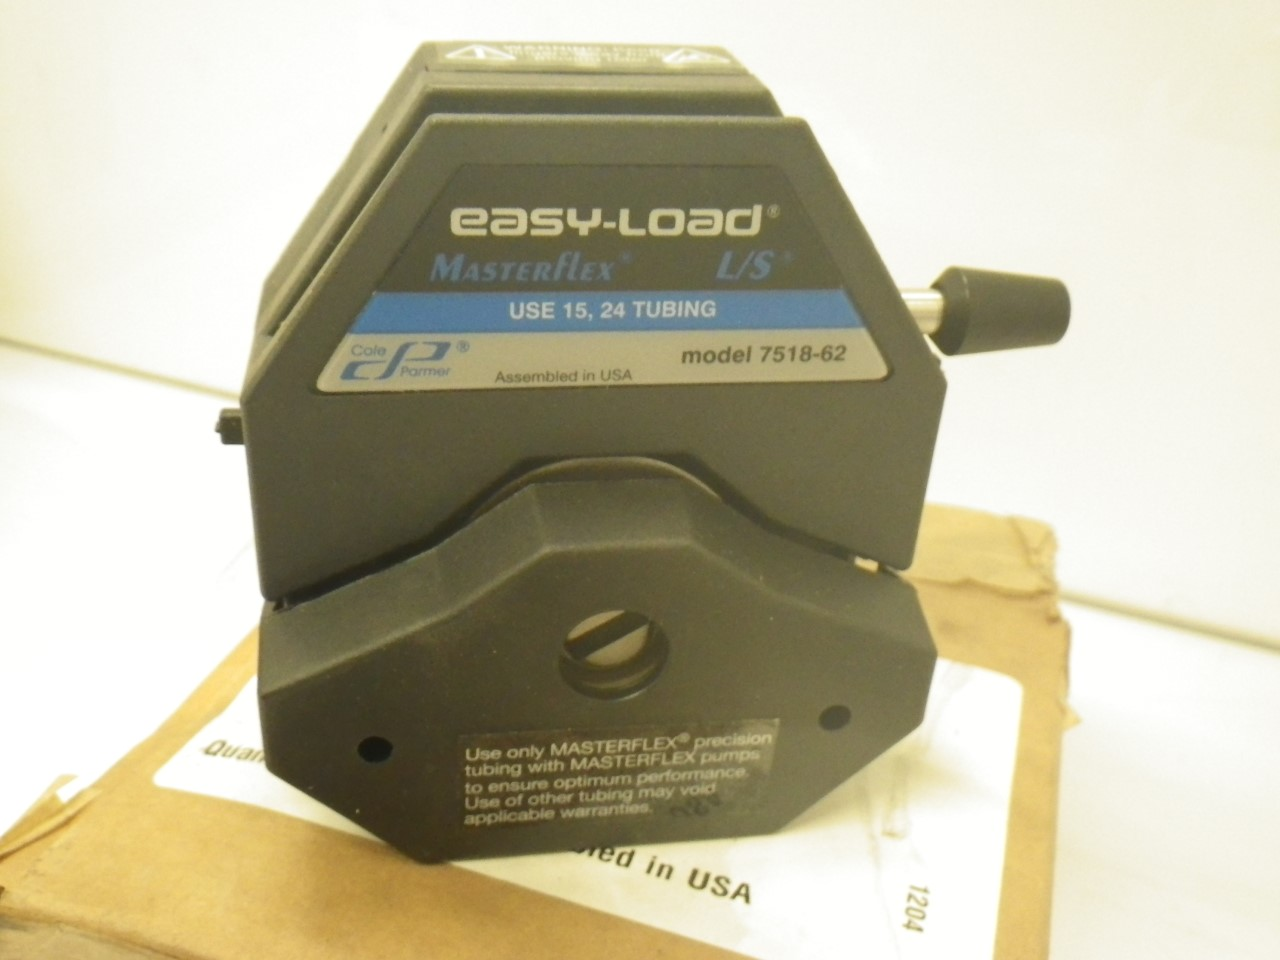 IMGP11207518-62 Cole Parmer Easy-load Masterflex Ls 7518-62 Pump Head (New with Box) (15)